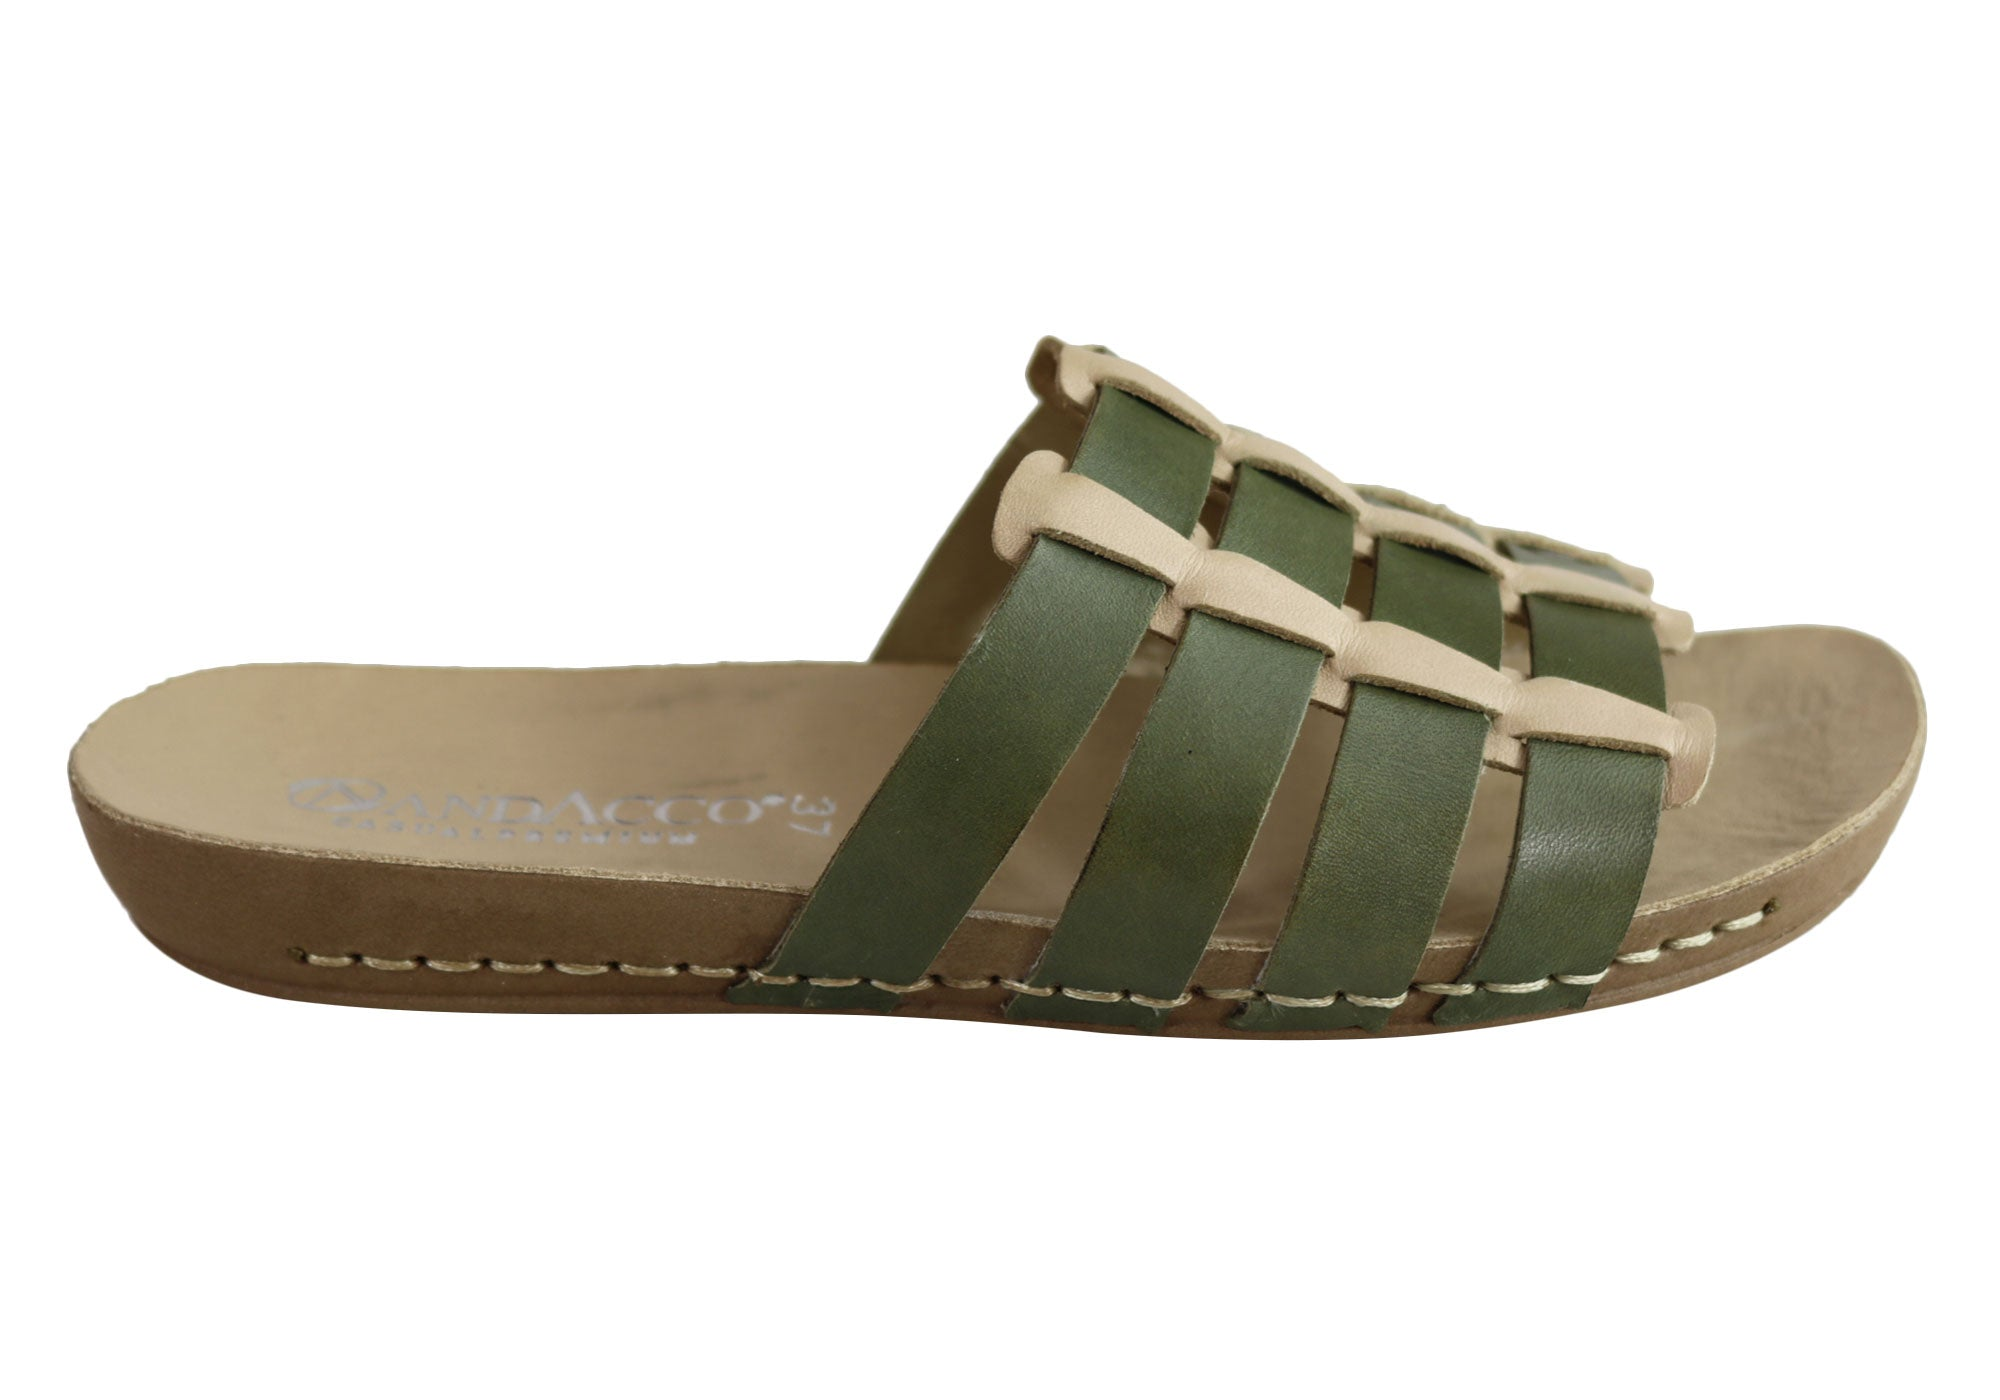 NEW-ANDACCO-SORRENTO-WOMENS-COMFORT-LEATHER-SLIDE-SANDALS-MADE-IN-BRAZIL